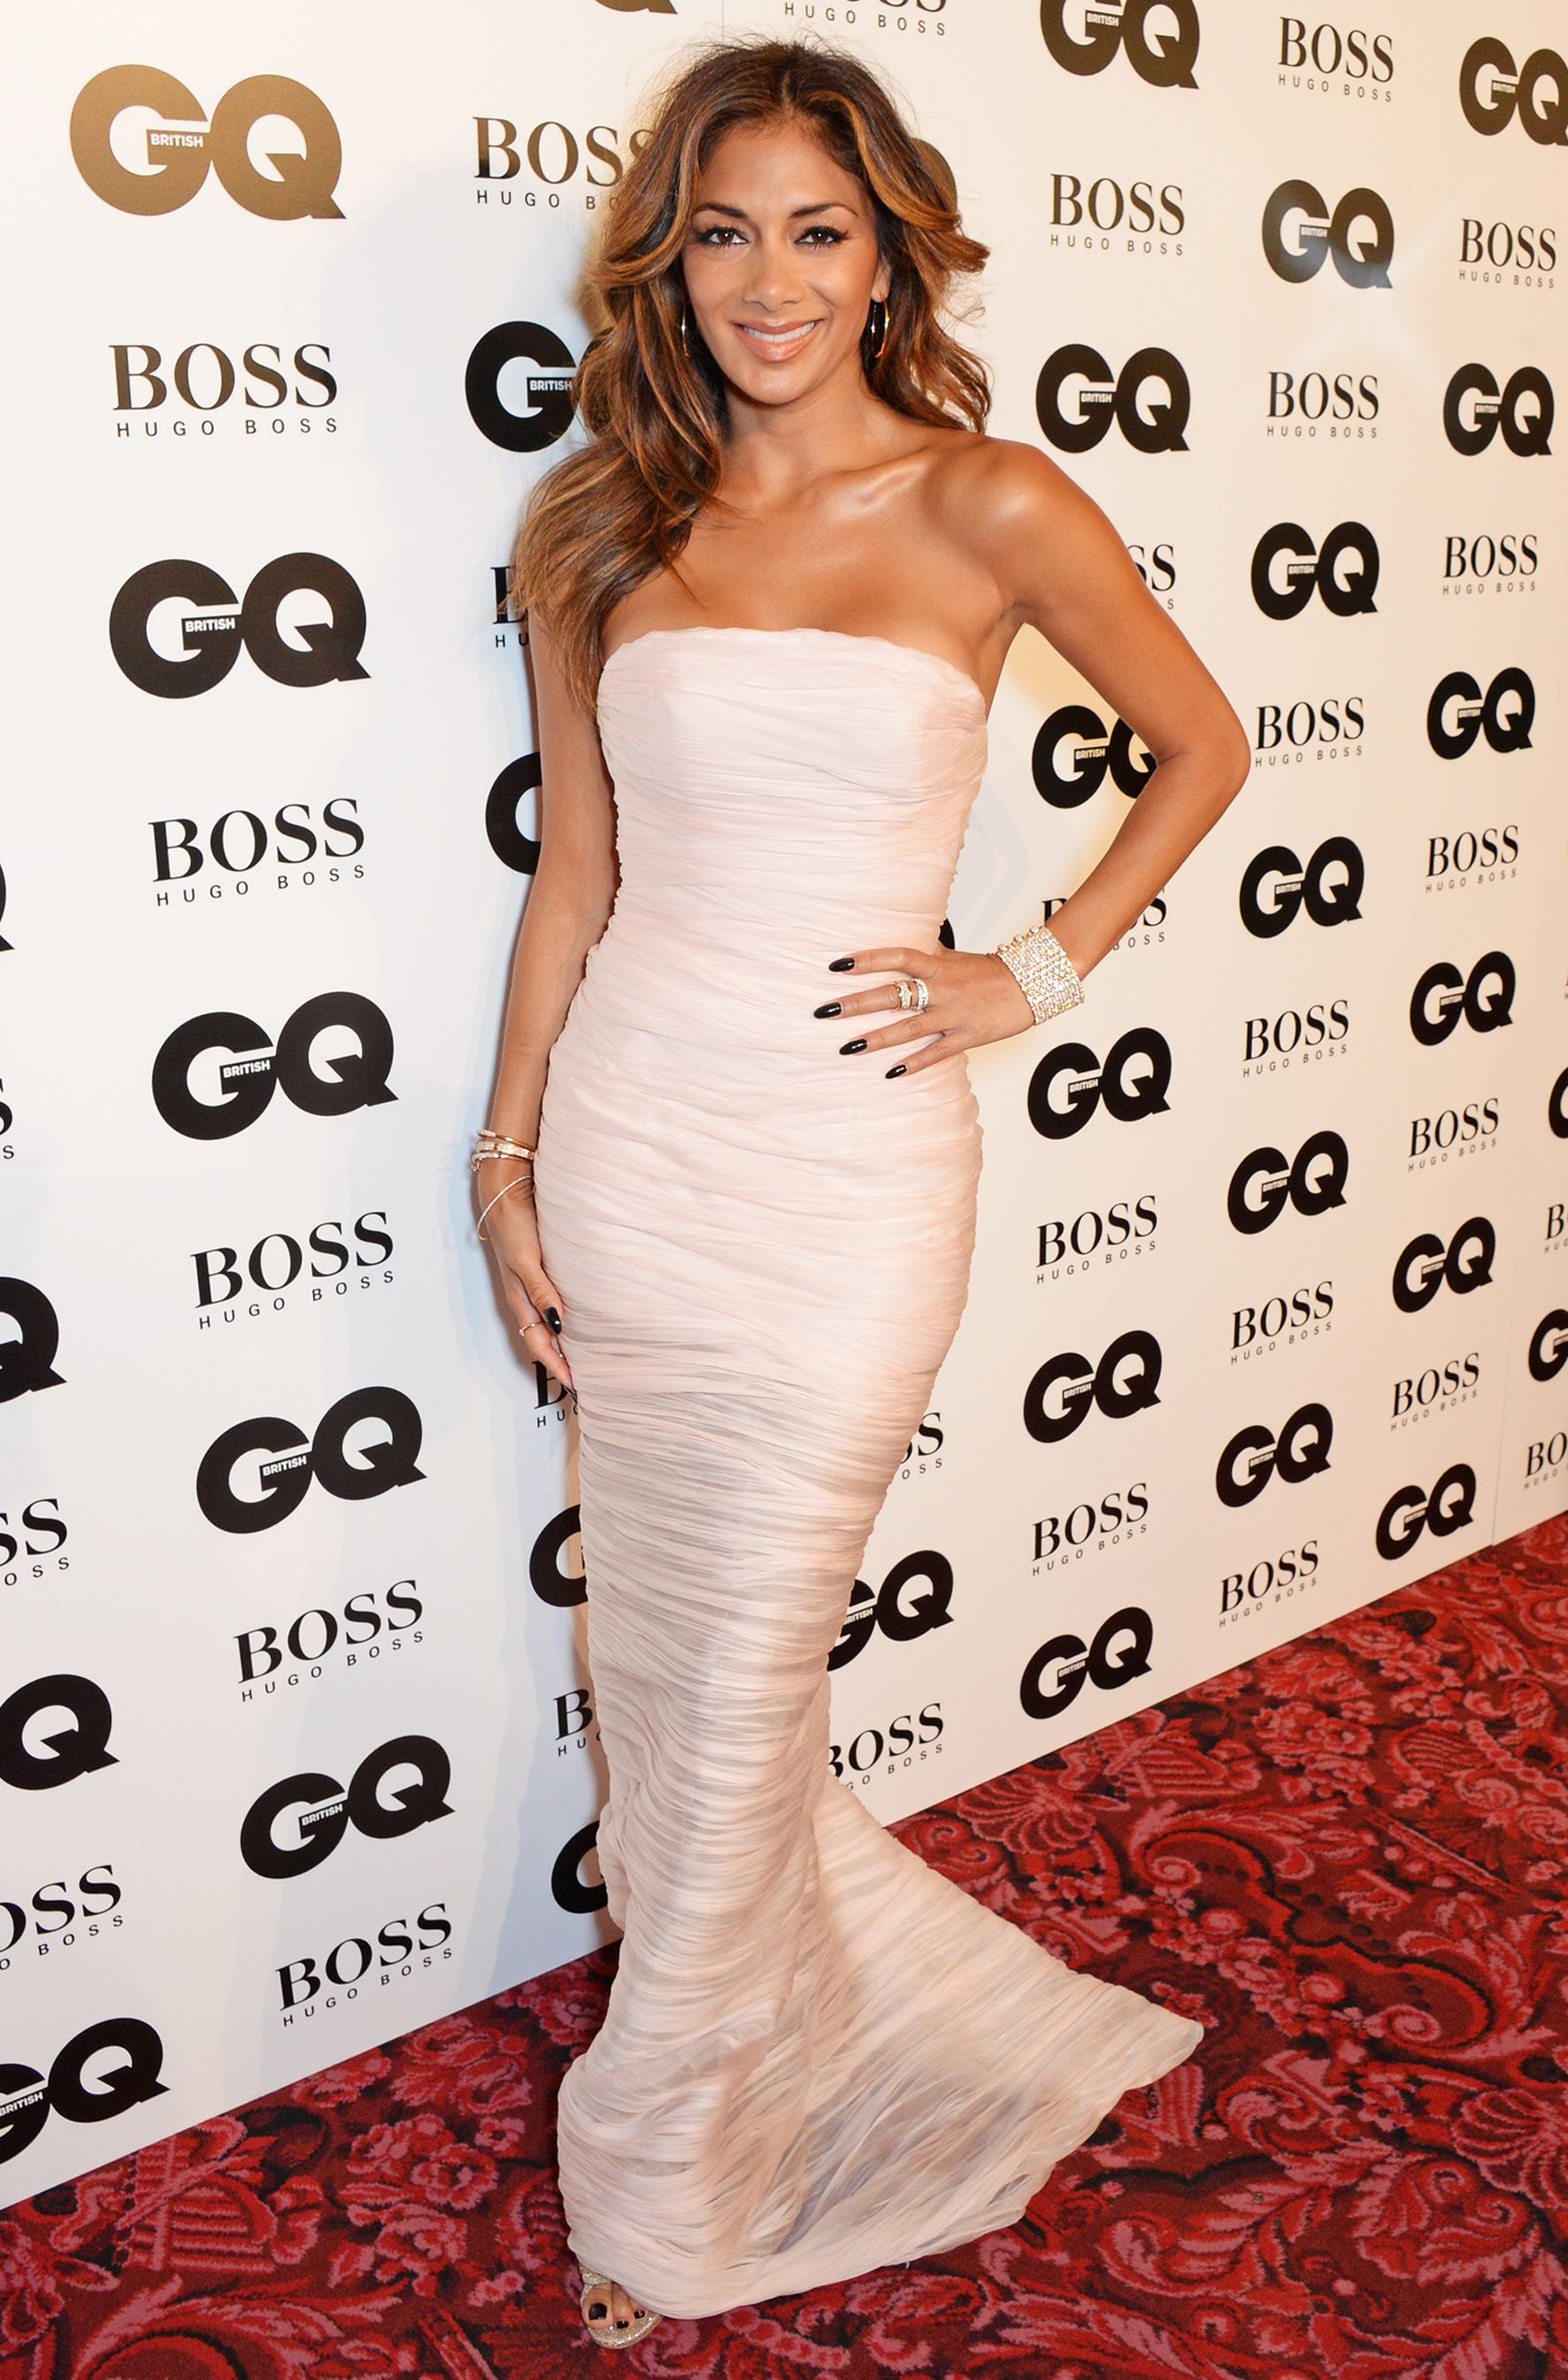 The Best of: GQ Men of the Year Awards 2014 | Lucy Fiona